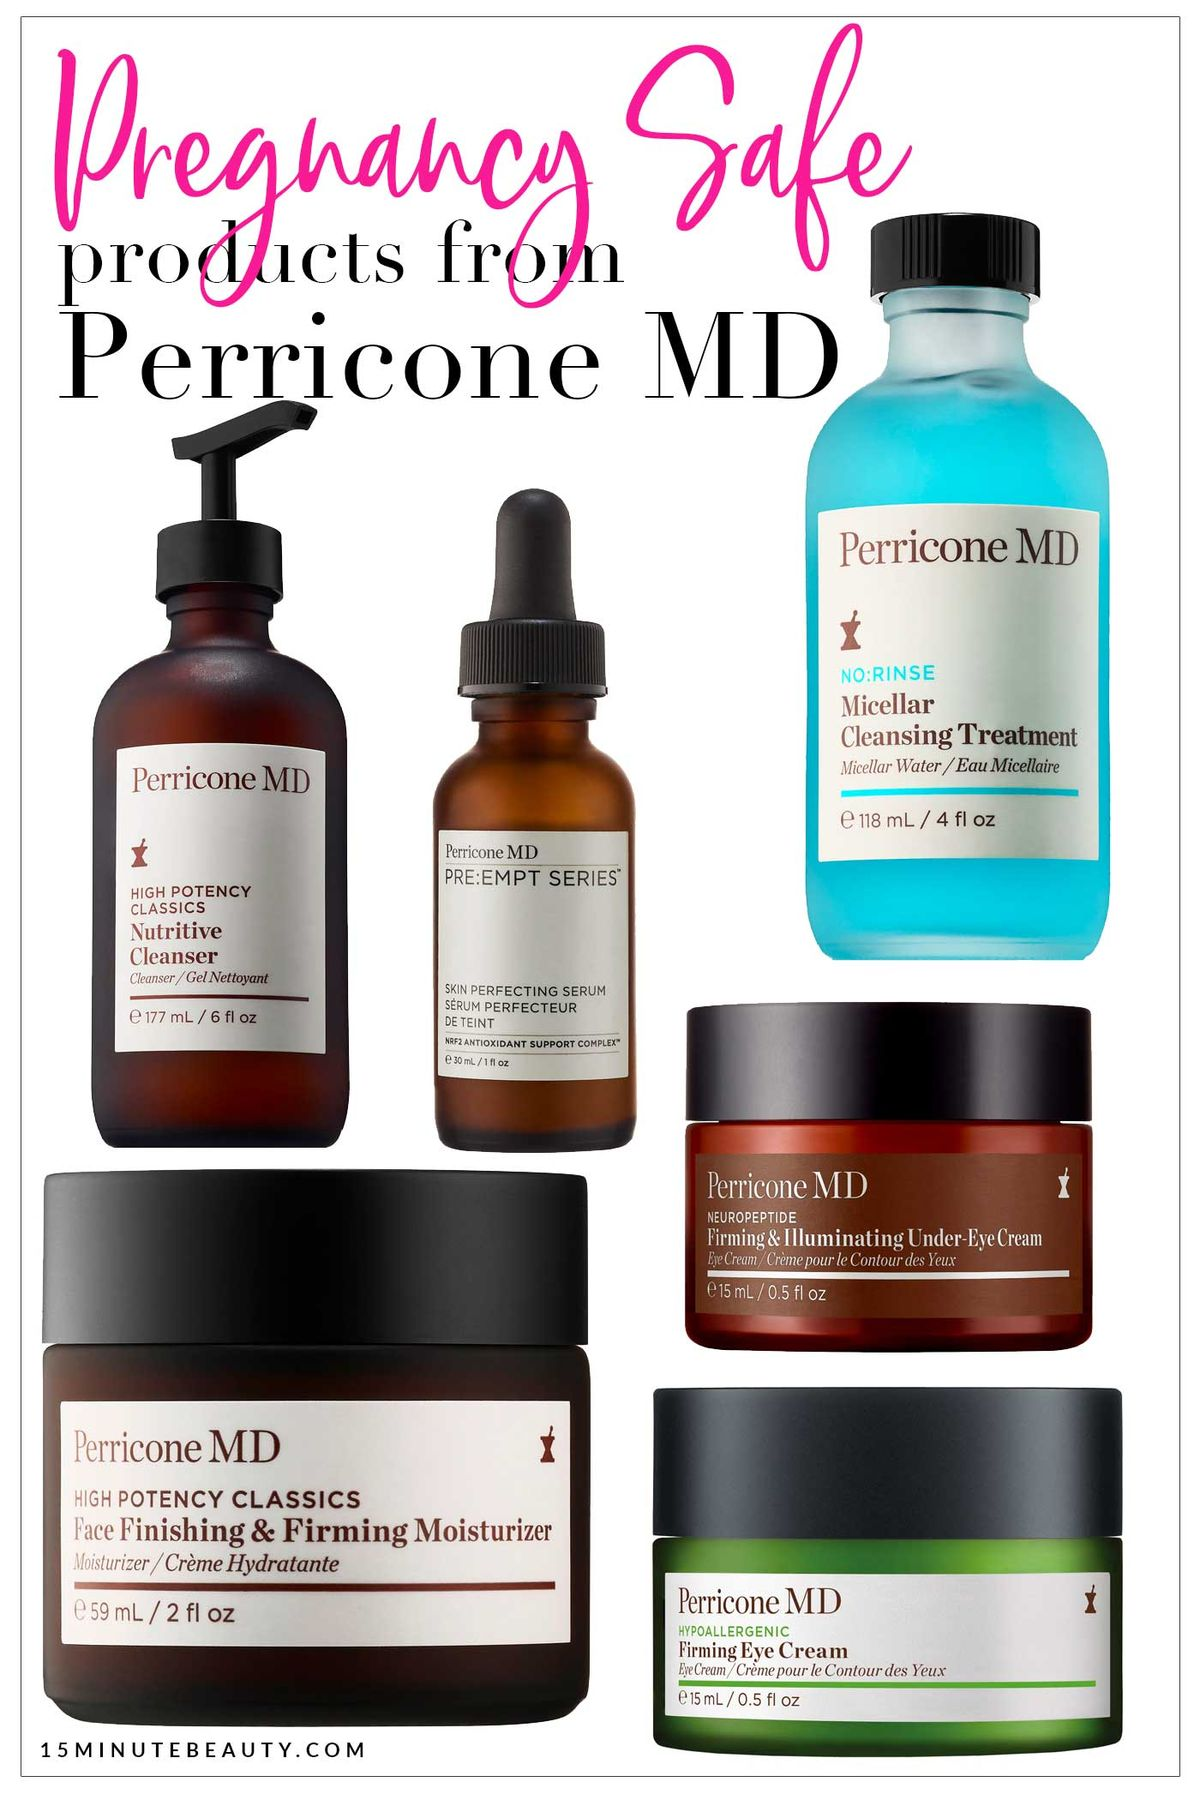 Is Perricone MD safe for pregnancy or nursing?